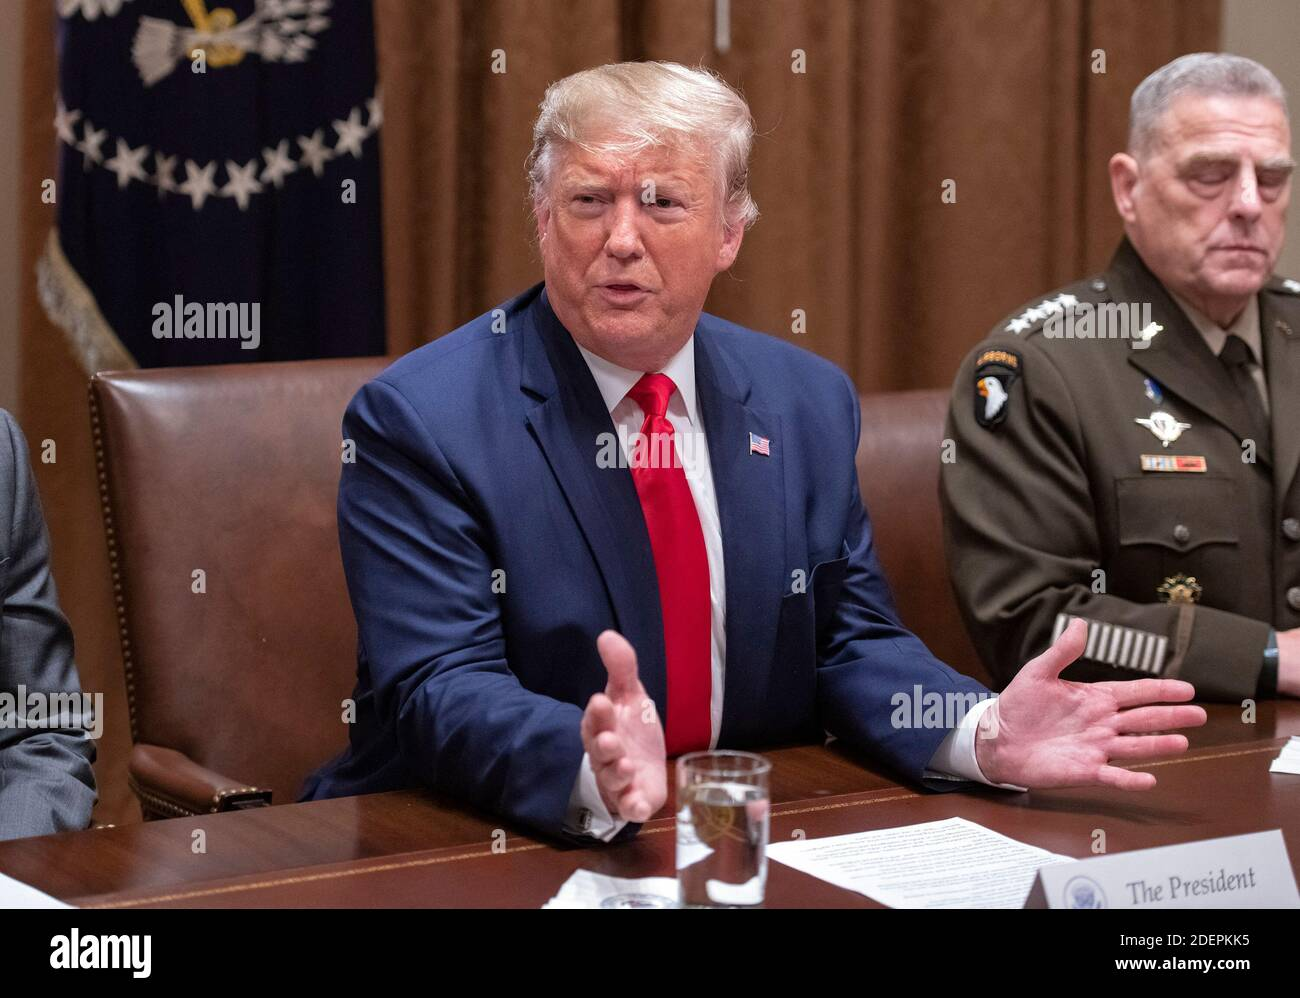 United States President Donald J. Trump answers a reporter's question as he participates in a briefing with senior military leaders in the Cabinet Room of the White House in Washington, DC, USA on Monday, October 7, 2019. At right is United States Army General Mark A. Milley, Chairman of the Joint Chiefs of Staff. Photo by Ron Sachs/CNP/ABACAPRESS.COM Stock Photo